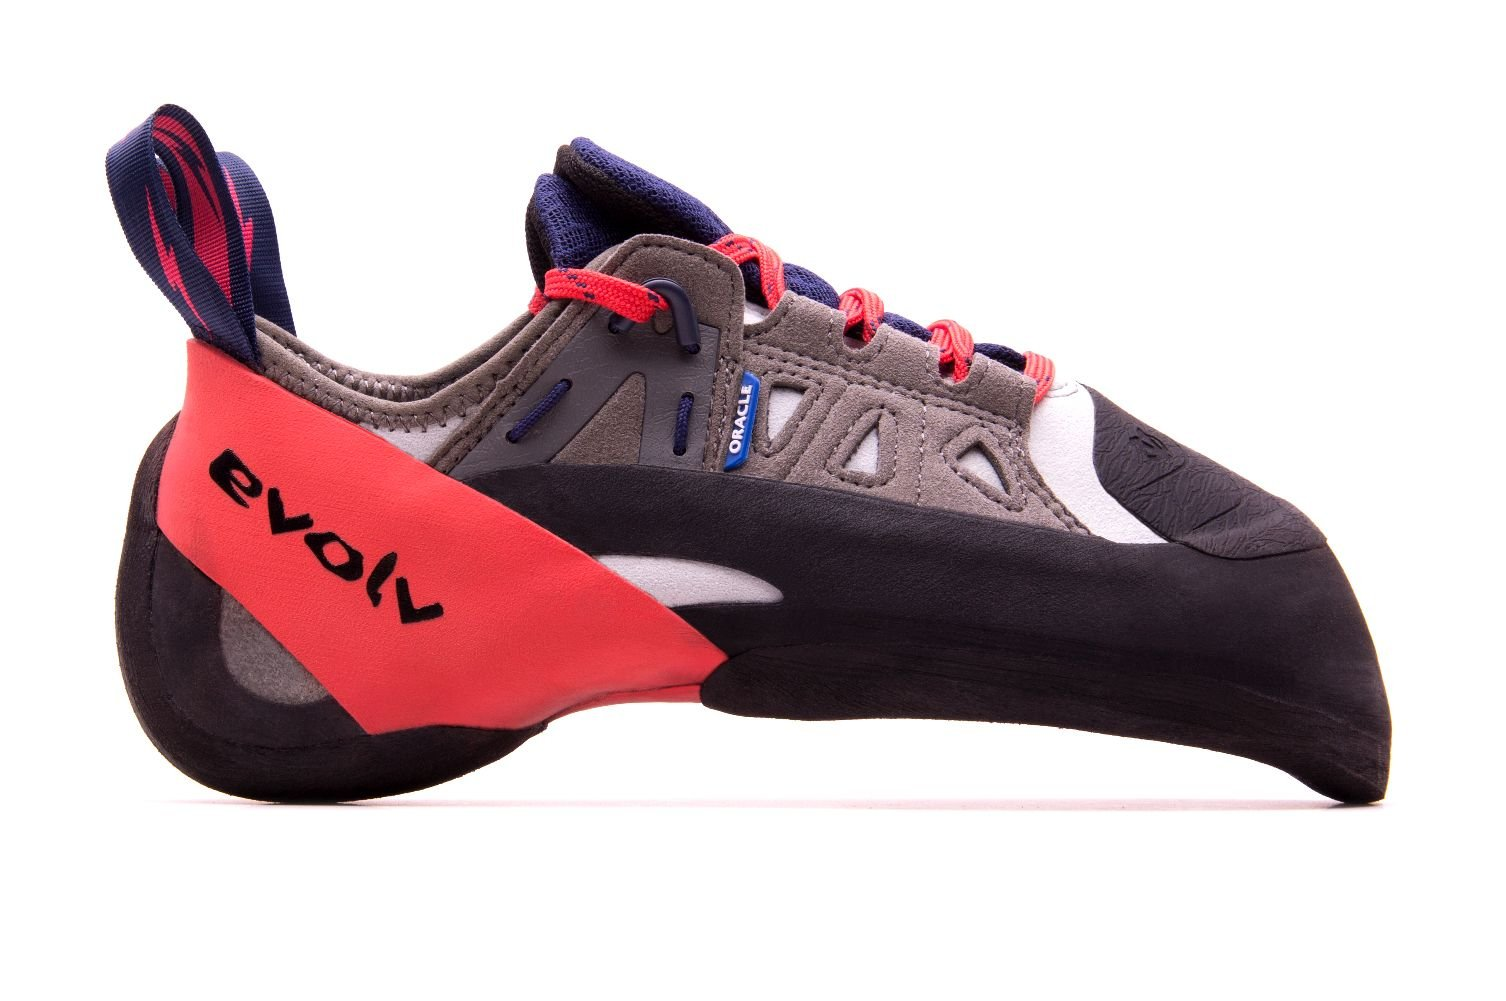 Evolv Oracle Climbing Shoe - Men's Blue/Red/Gray 8